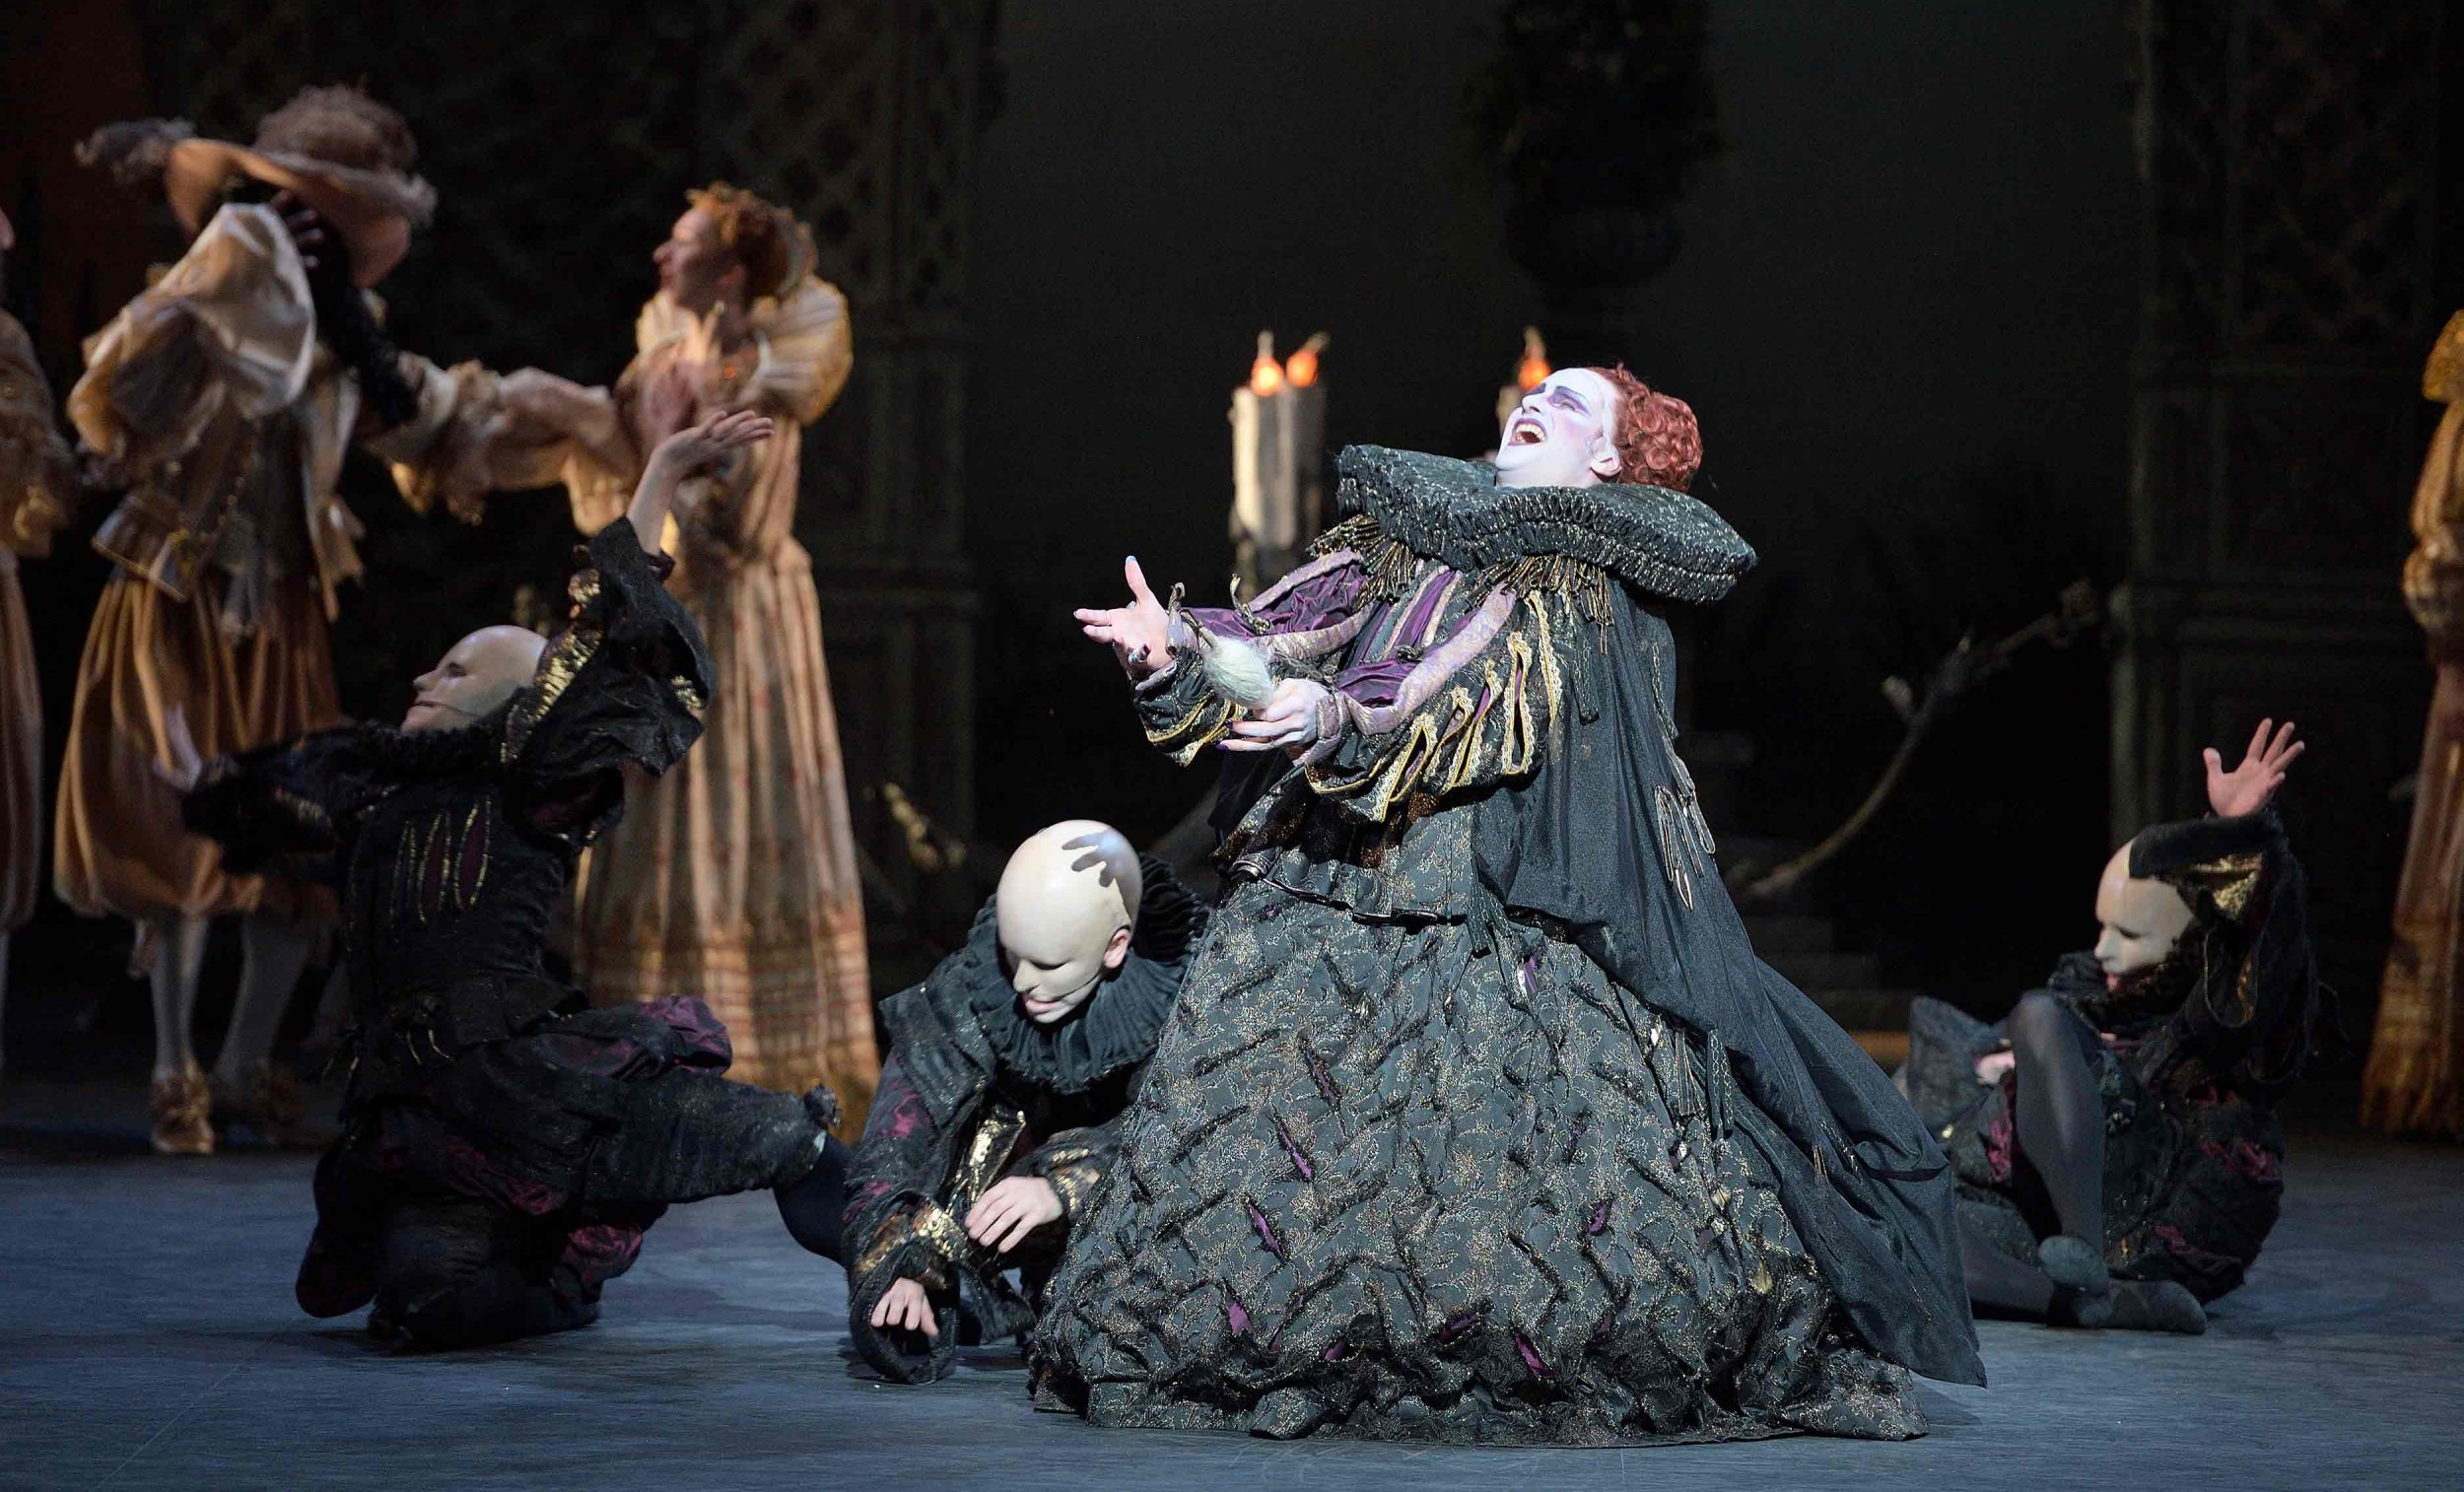 James-Streeter-as-Carabosse-in-The-Sleeping-Beauty-©-Laurent-Liotardo-(3)_WEB